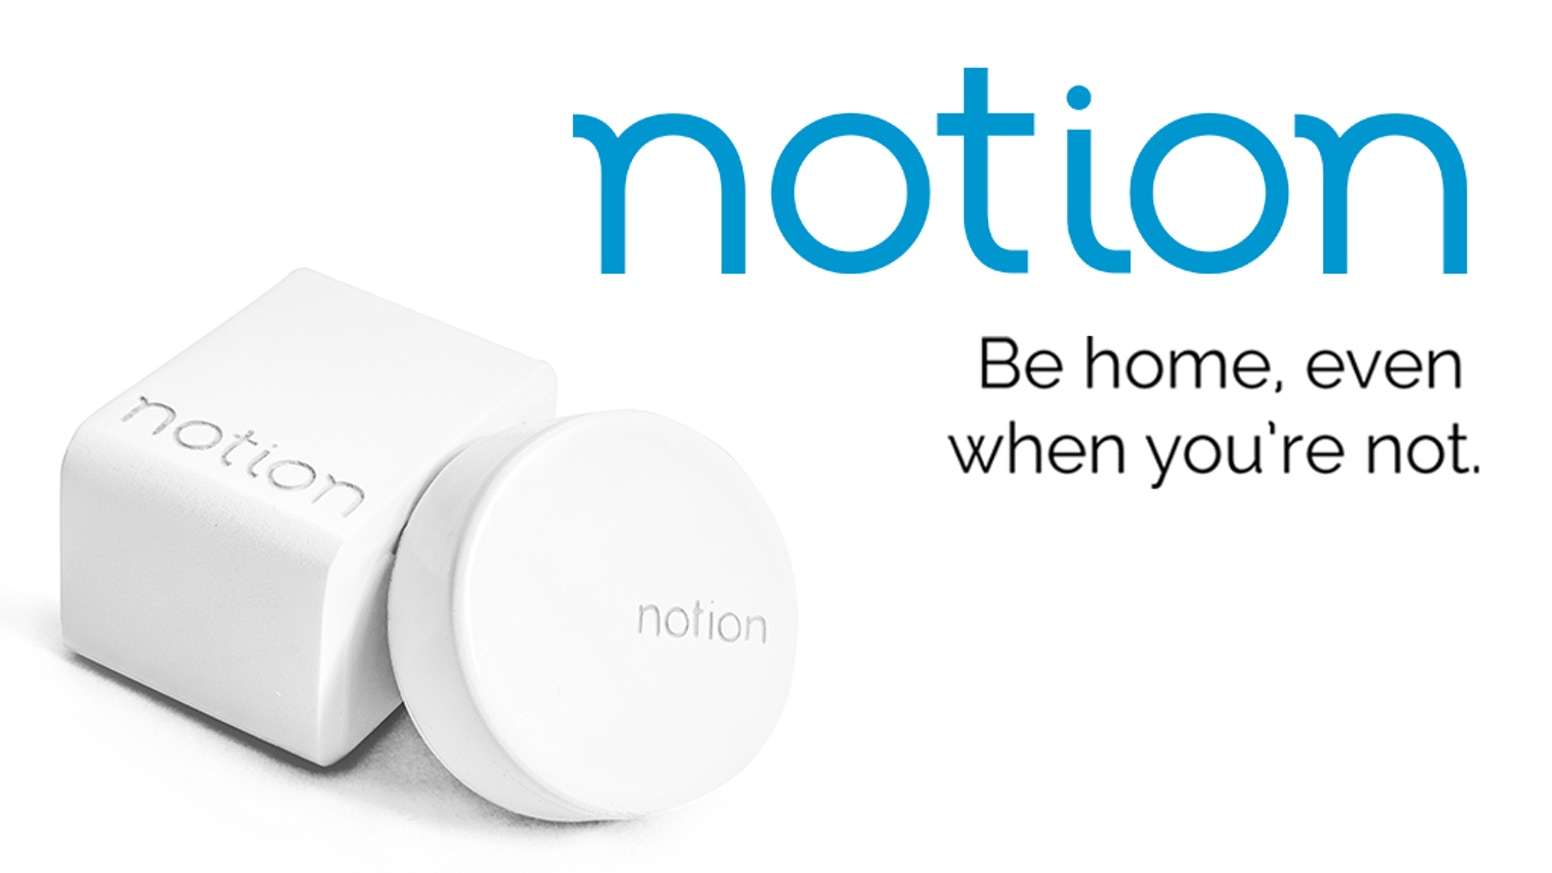 Monitor your home with a single sensor, wherever you are.